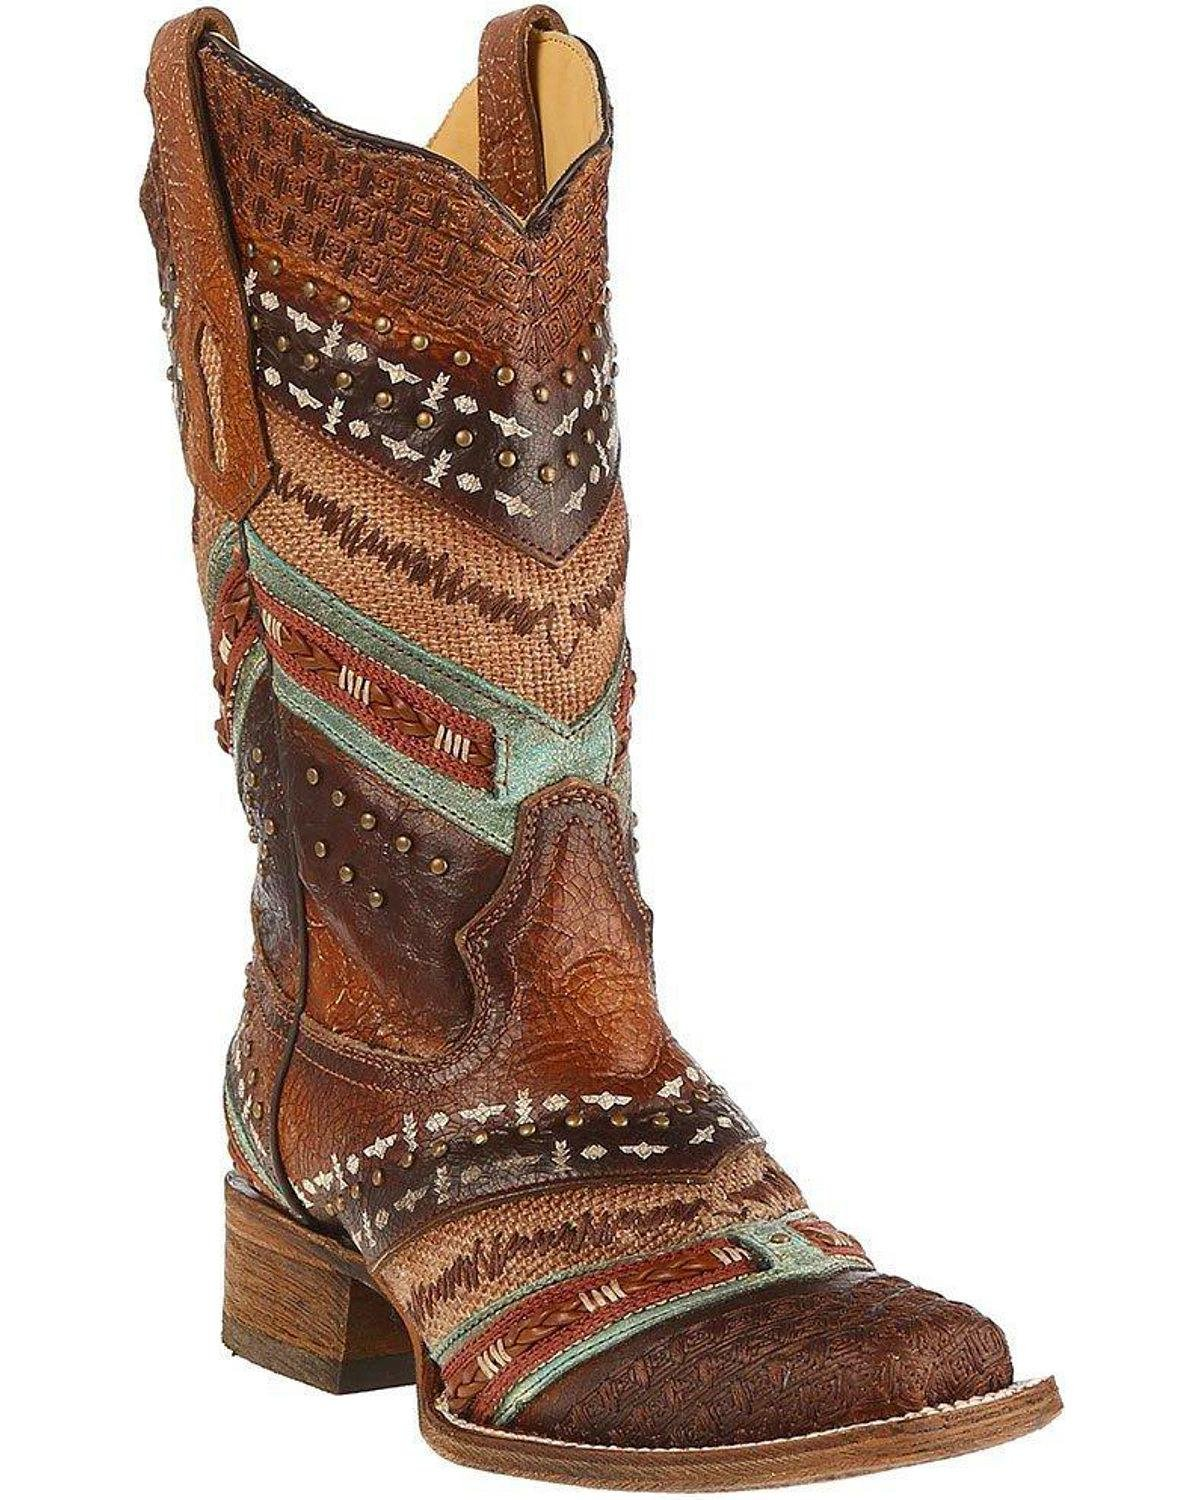 CORRAL Women's Turquoise and Embroidered Cowgirl Boot Square Toe - A3424 B072ZQMY11 6.5 B(M) US|Brown